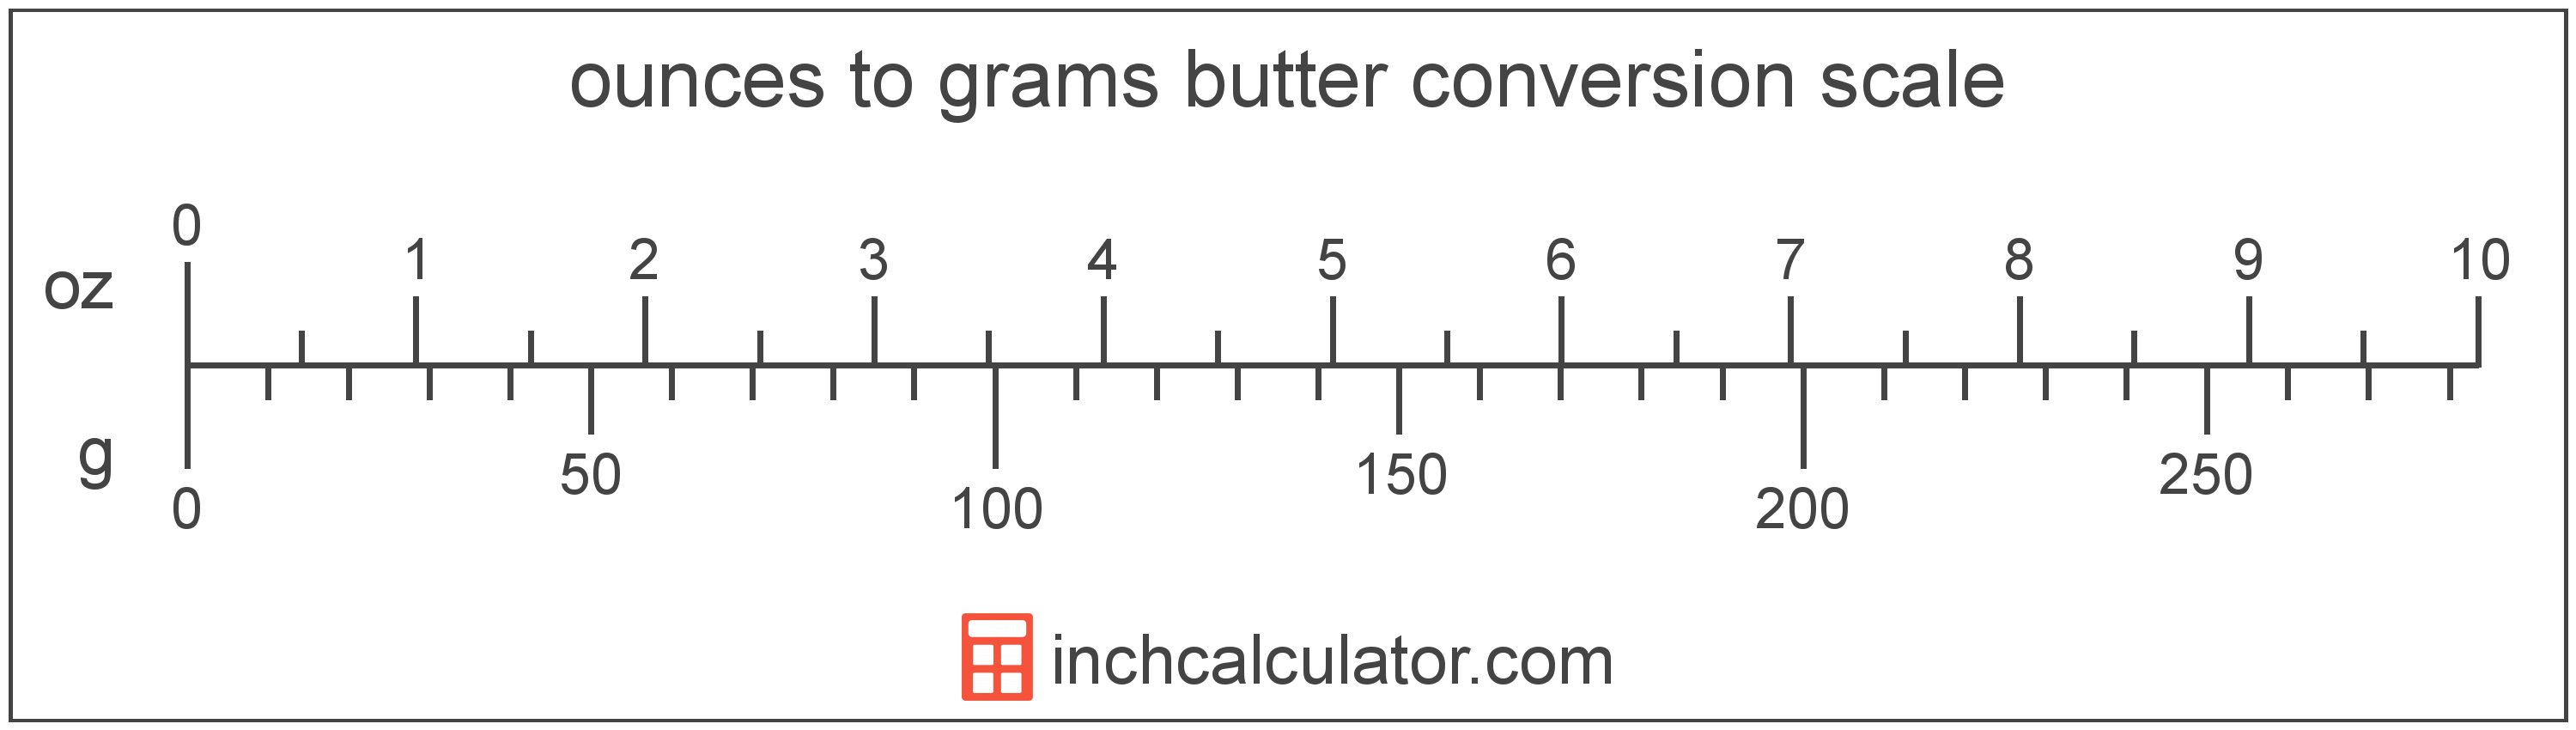 conversion scale showing ounces and equivalent grams butter values